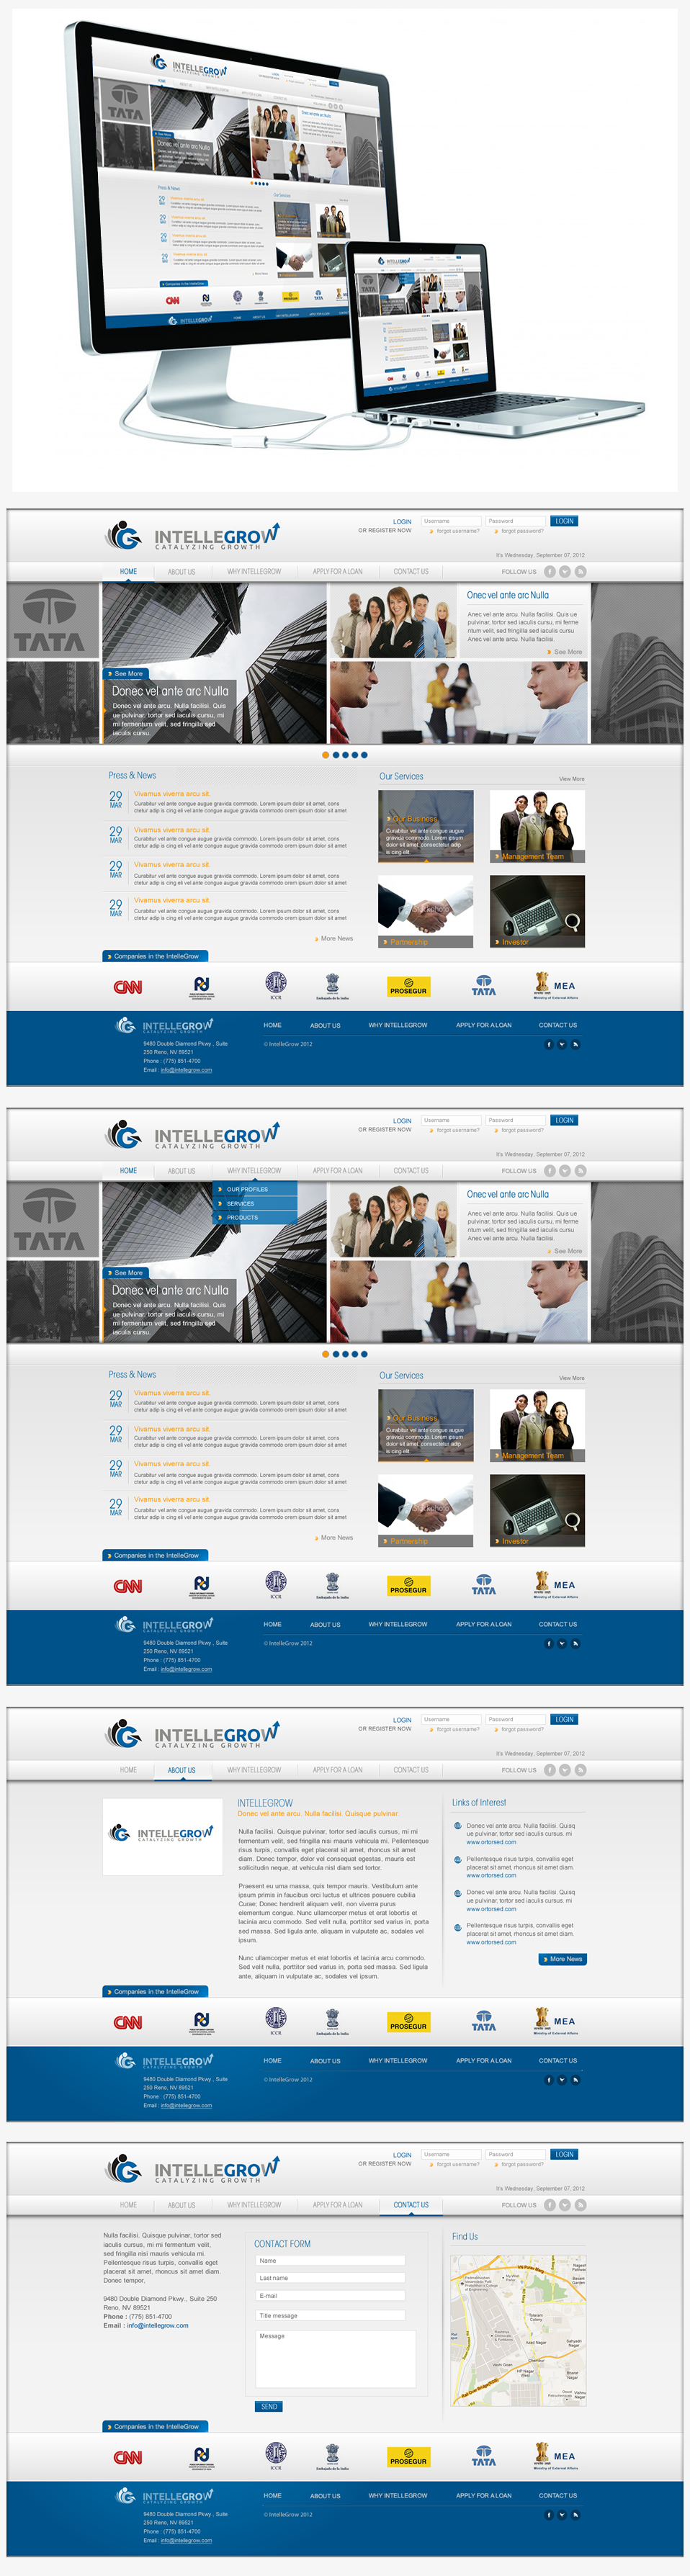 Web Page Design by Juma Studio - Entry No. 39 in the Web Page Design Contest IntelleGrow Finance Web Page Design.